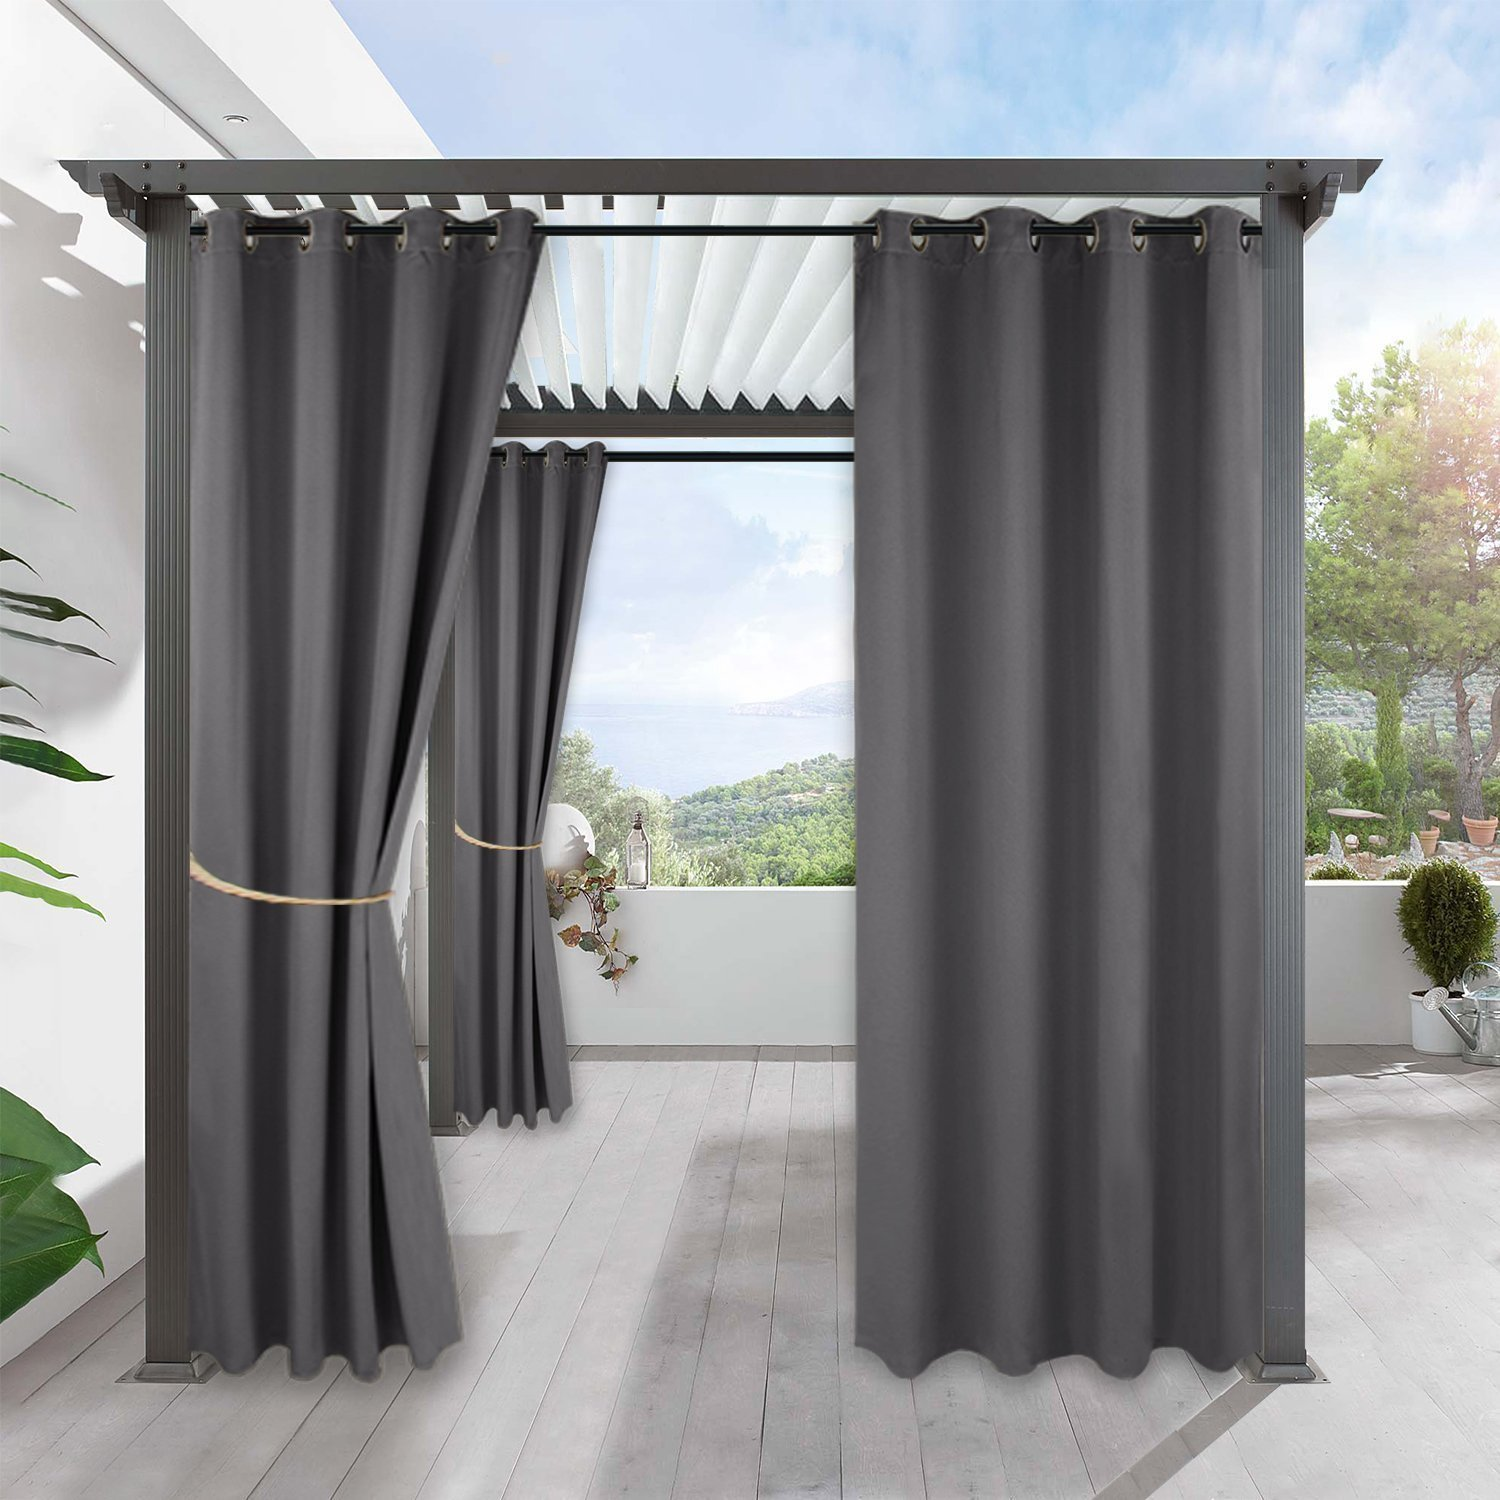 RYB HOME Extra Long Outdoor Curtains, Exterior Patio Door Curtain Sunlight Block Out Privacy Panel for Swimming Pool / Backyard / Porch, Single Piece, Width 52 by Length 108 Inch, Grey